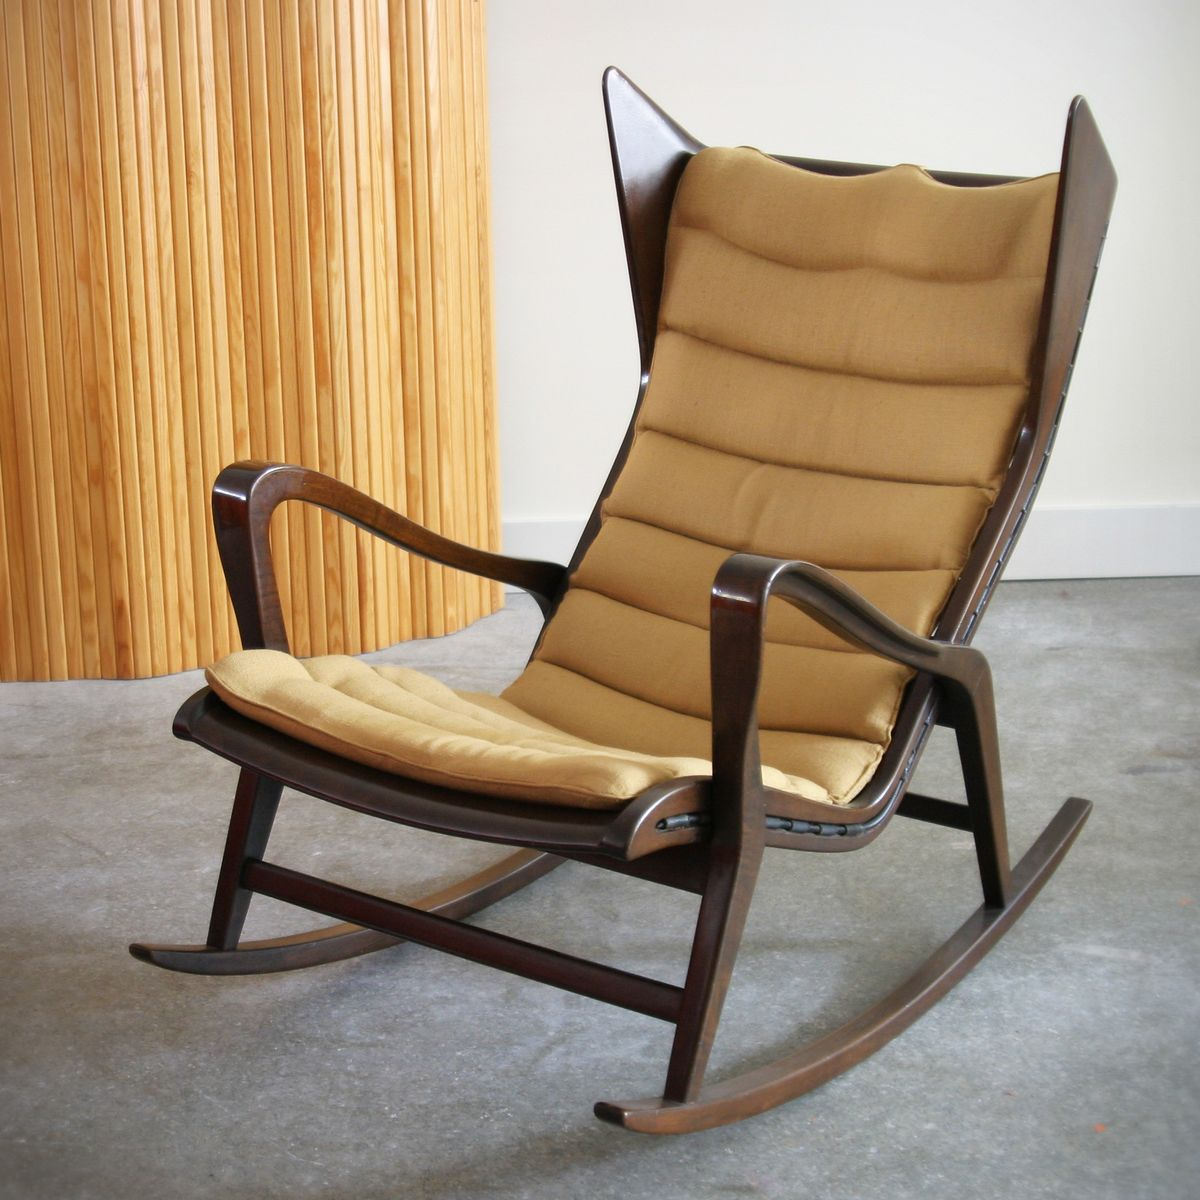 Wonderful image of Vintage Rocking Chair by Gio Ponti for Cassina for sale at Pamono with #A87523 color and 1200x1200 pixels